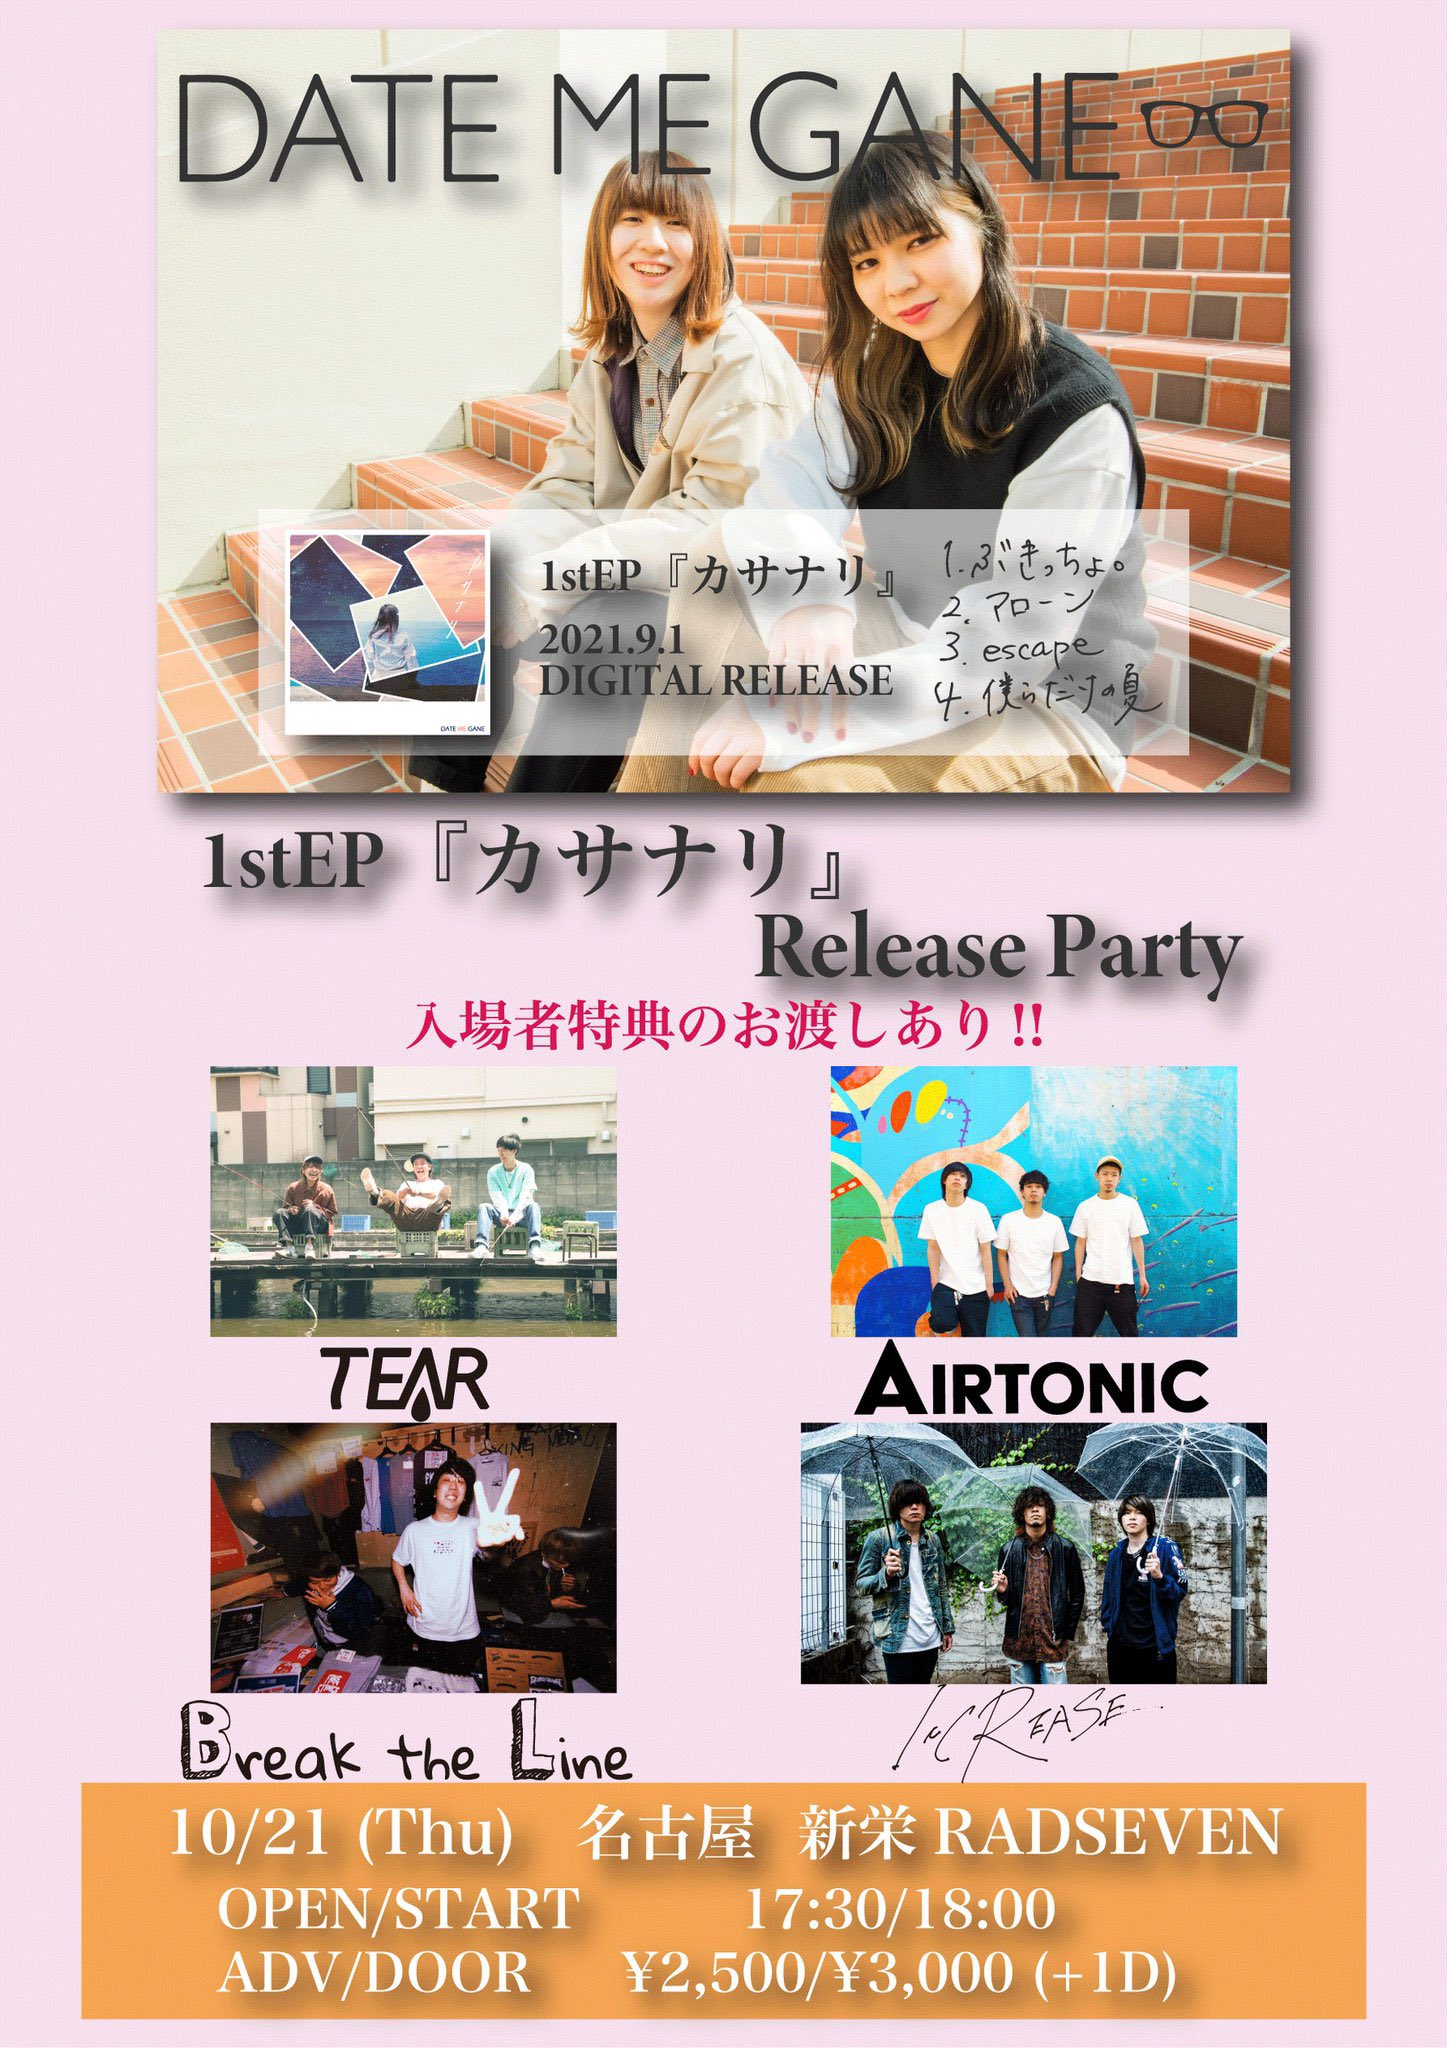 DATE ME GANE  1st EP『カサナリ』Release Party